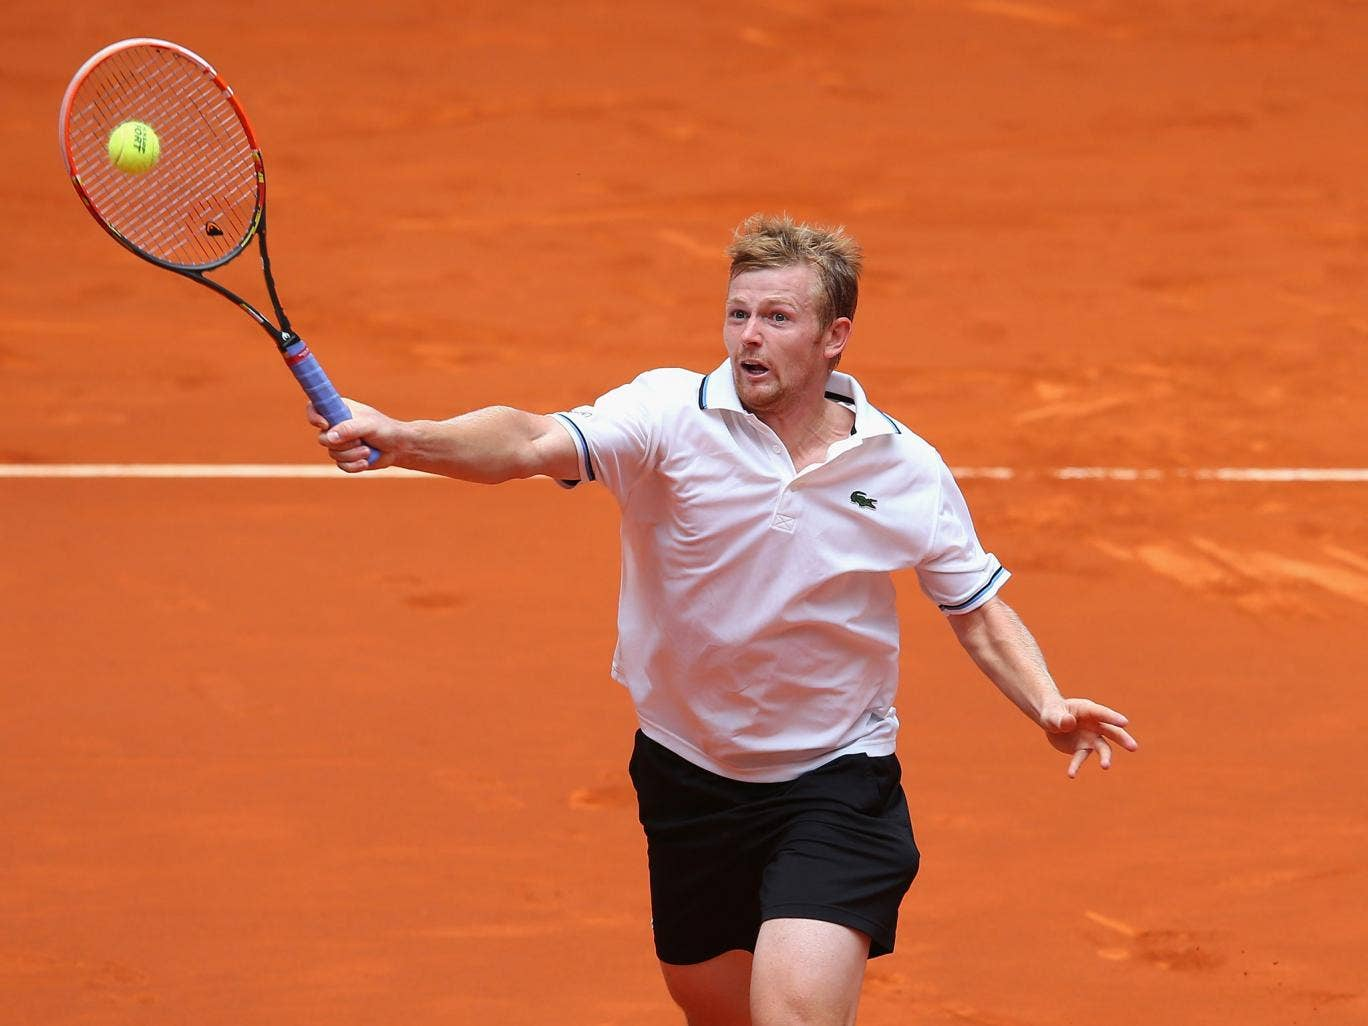 Andrey Golubev plays a volley at the Madrid Open earlier this month